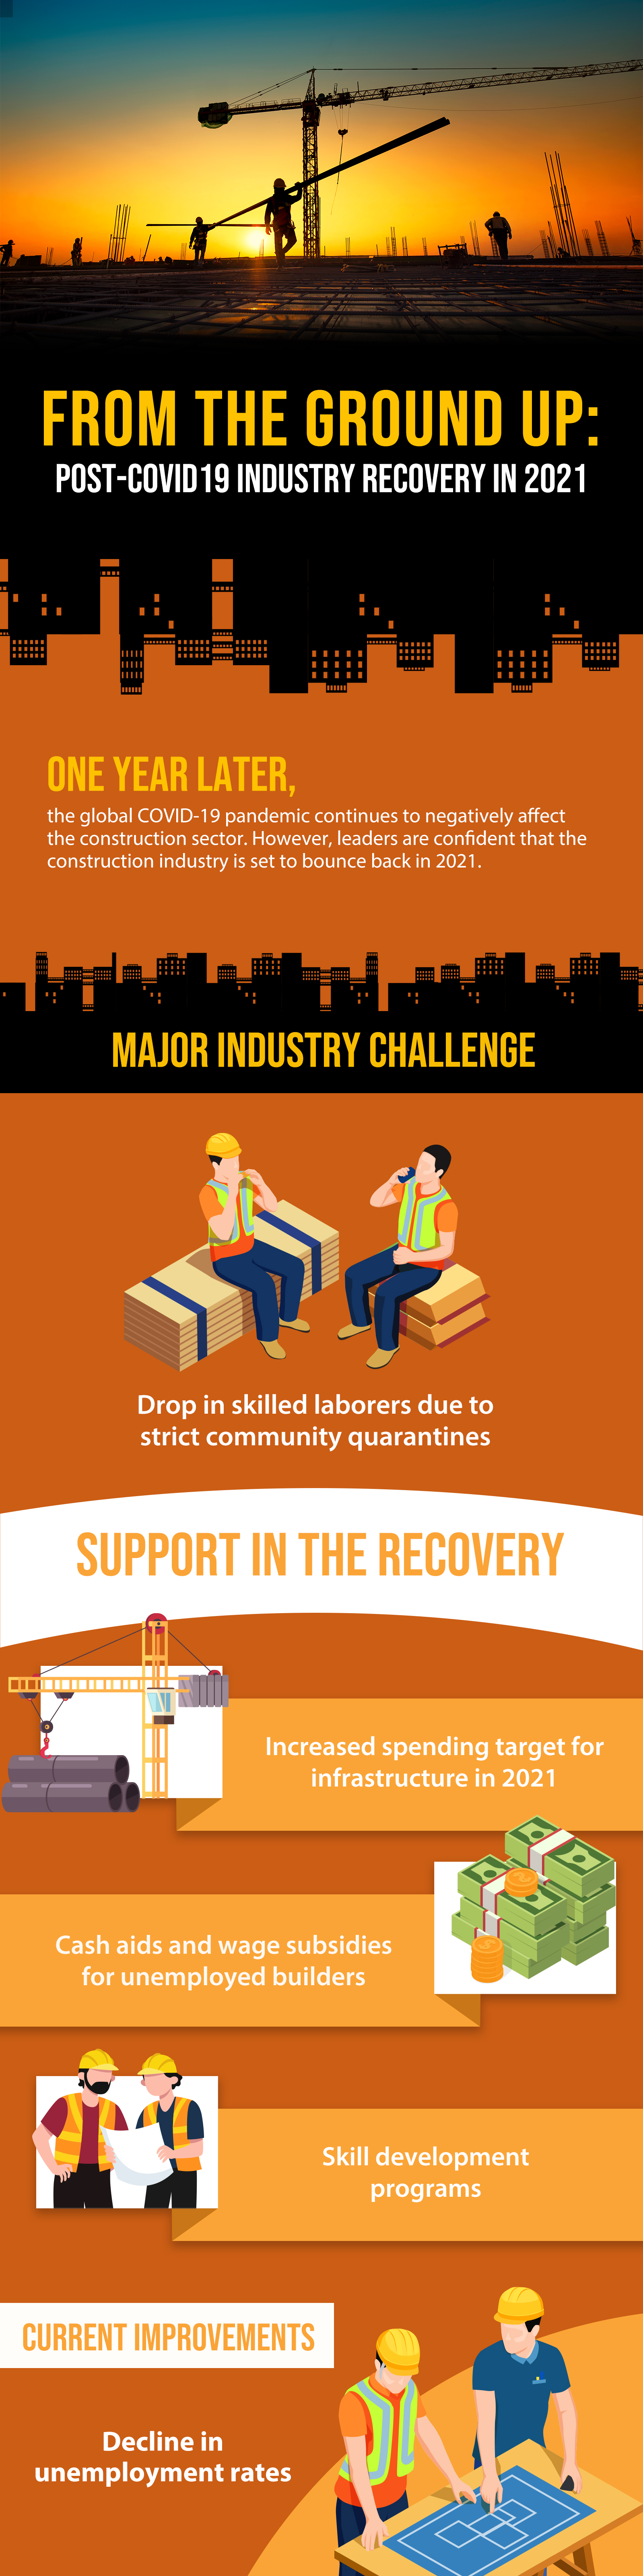 From the ground up: Post-COVID19 industry recovery in 2021